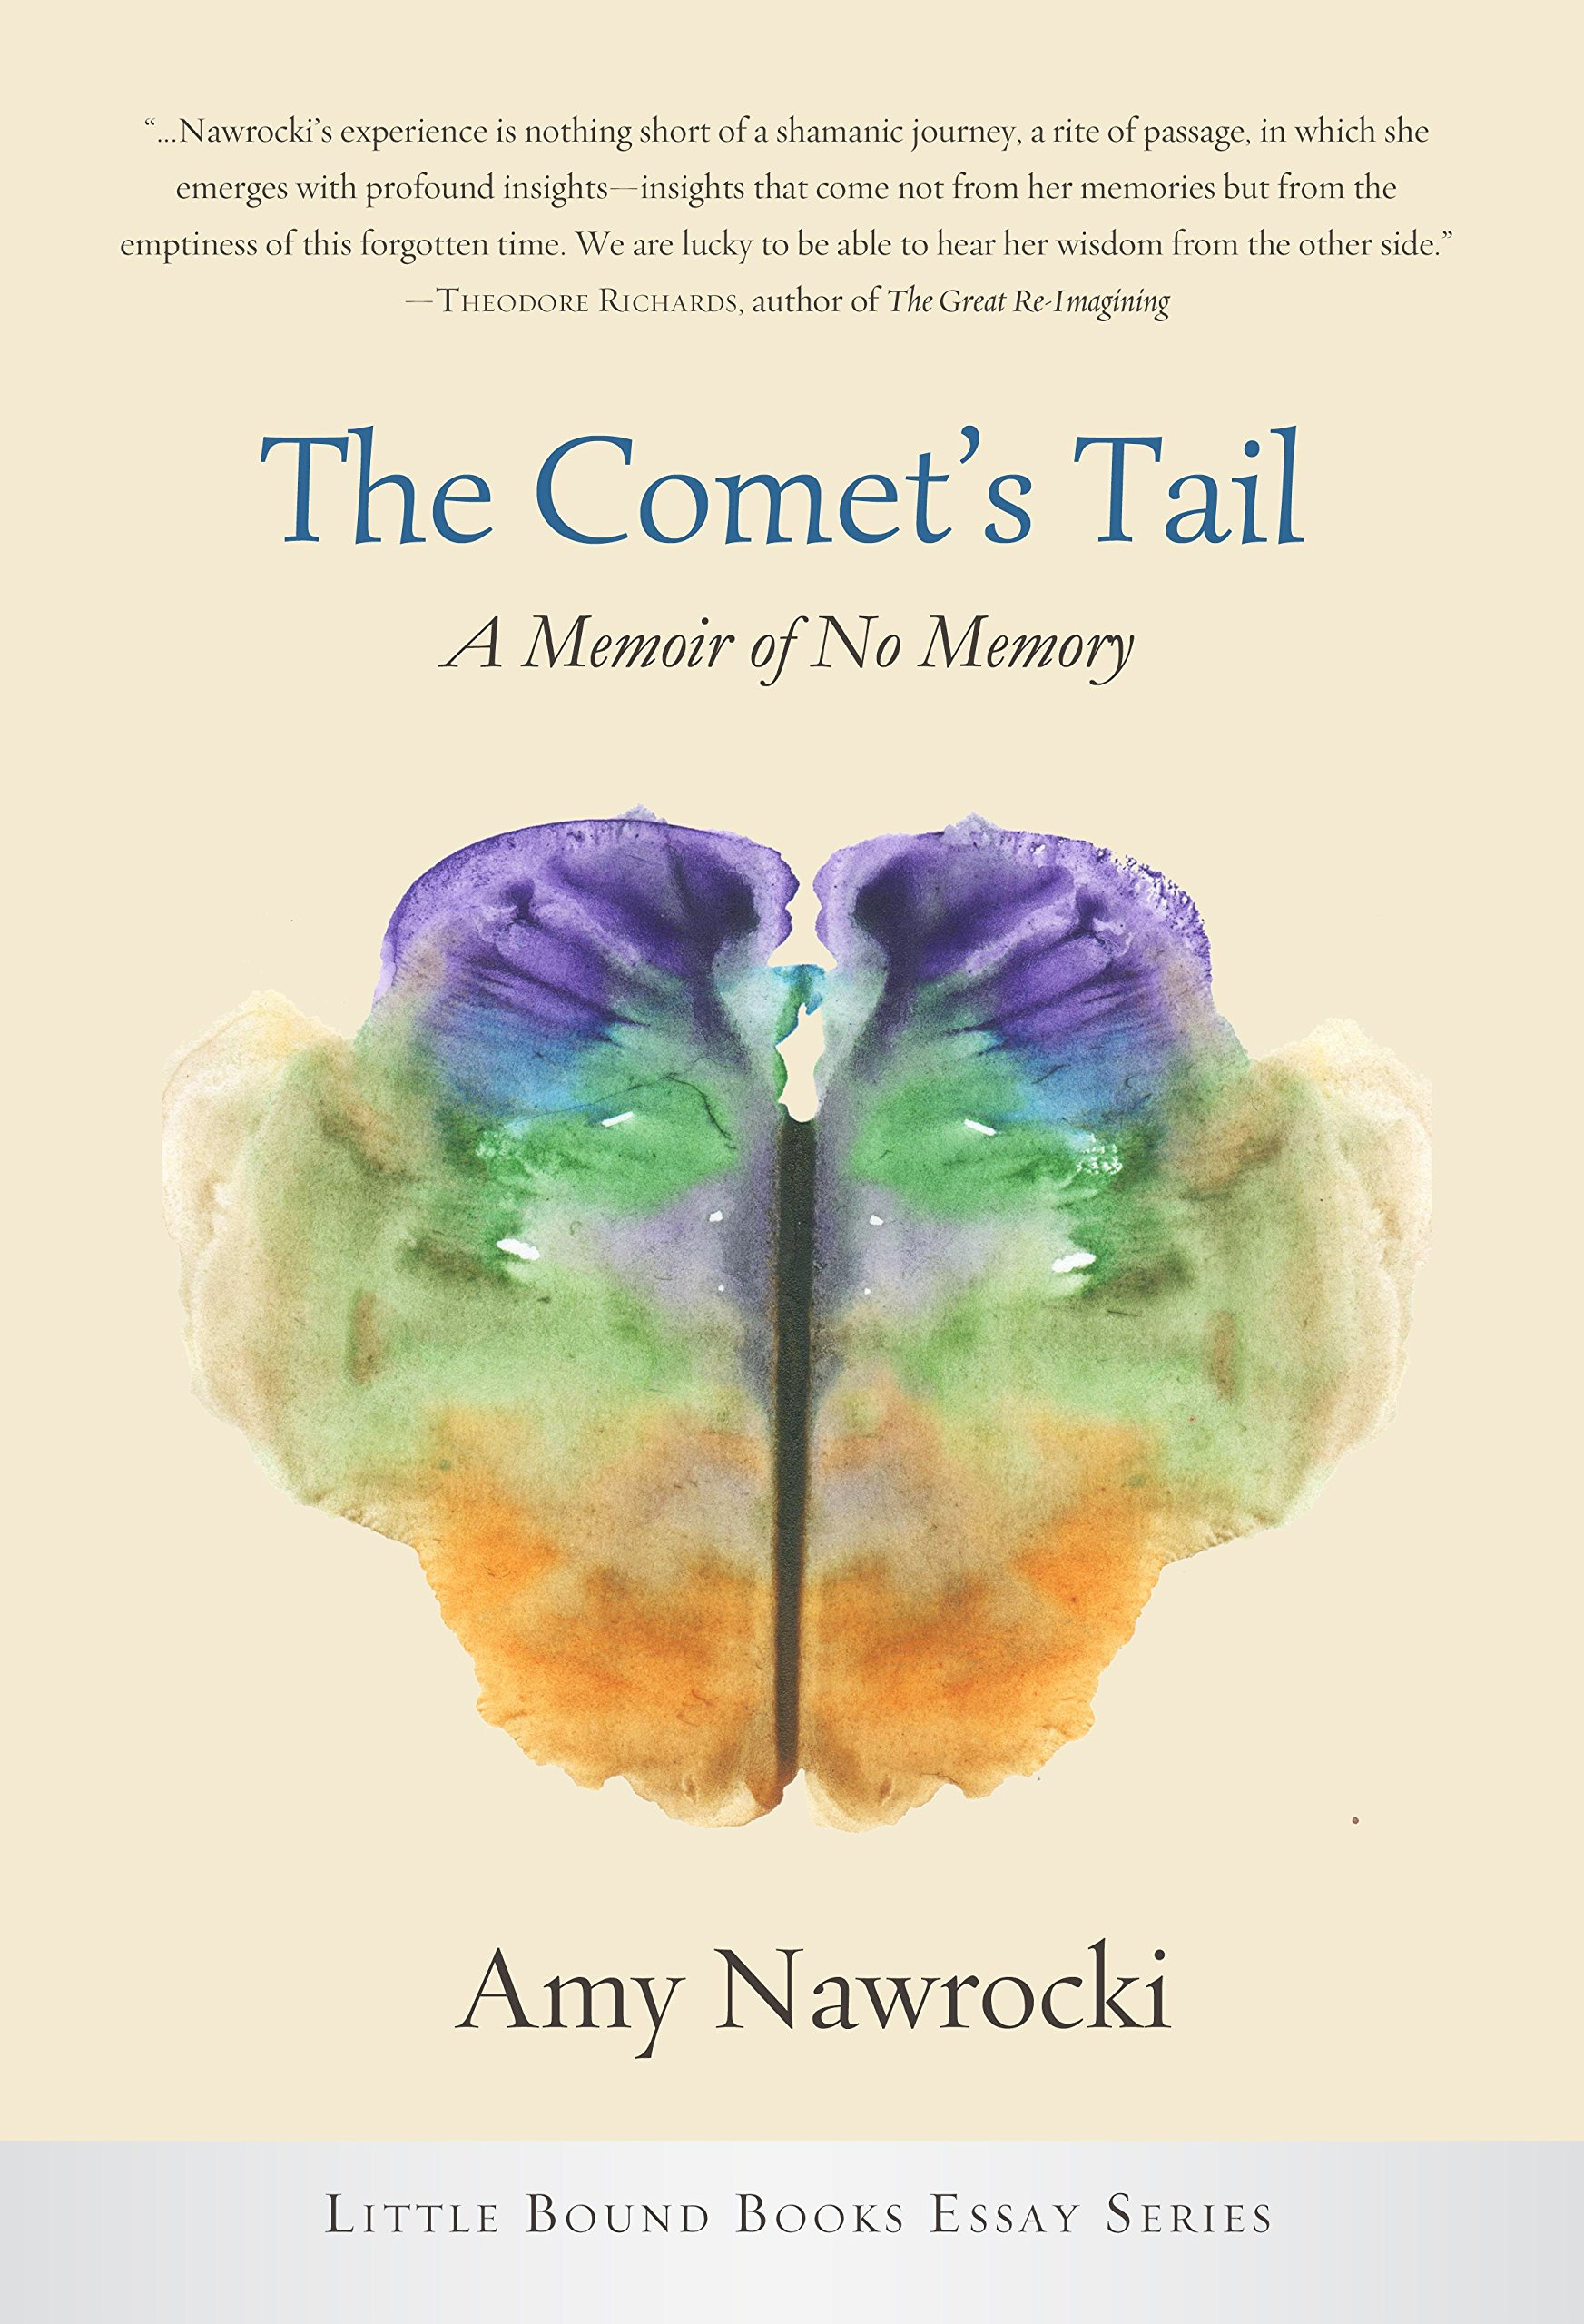 The Comet's Tail: A Memoir of No Memory